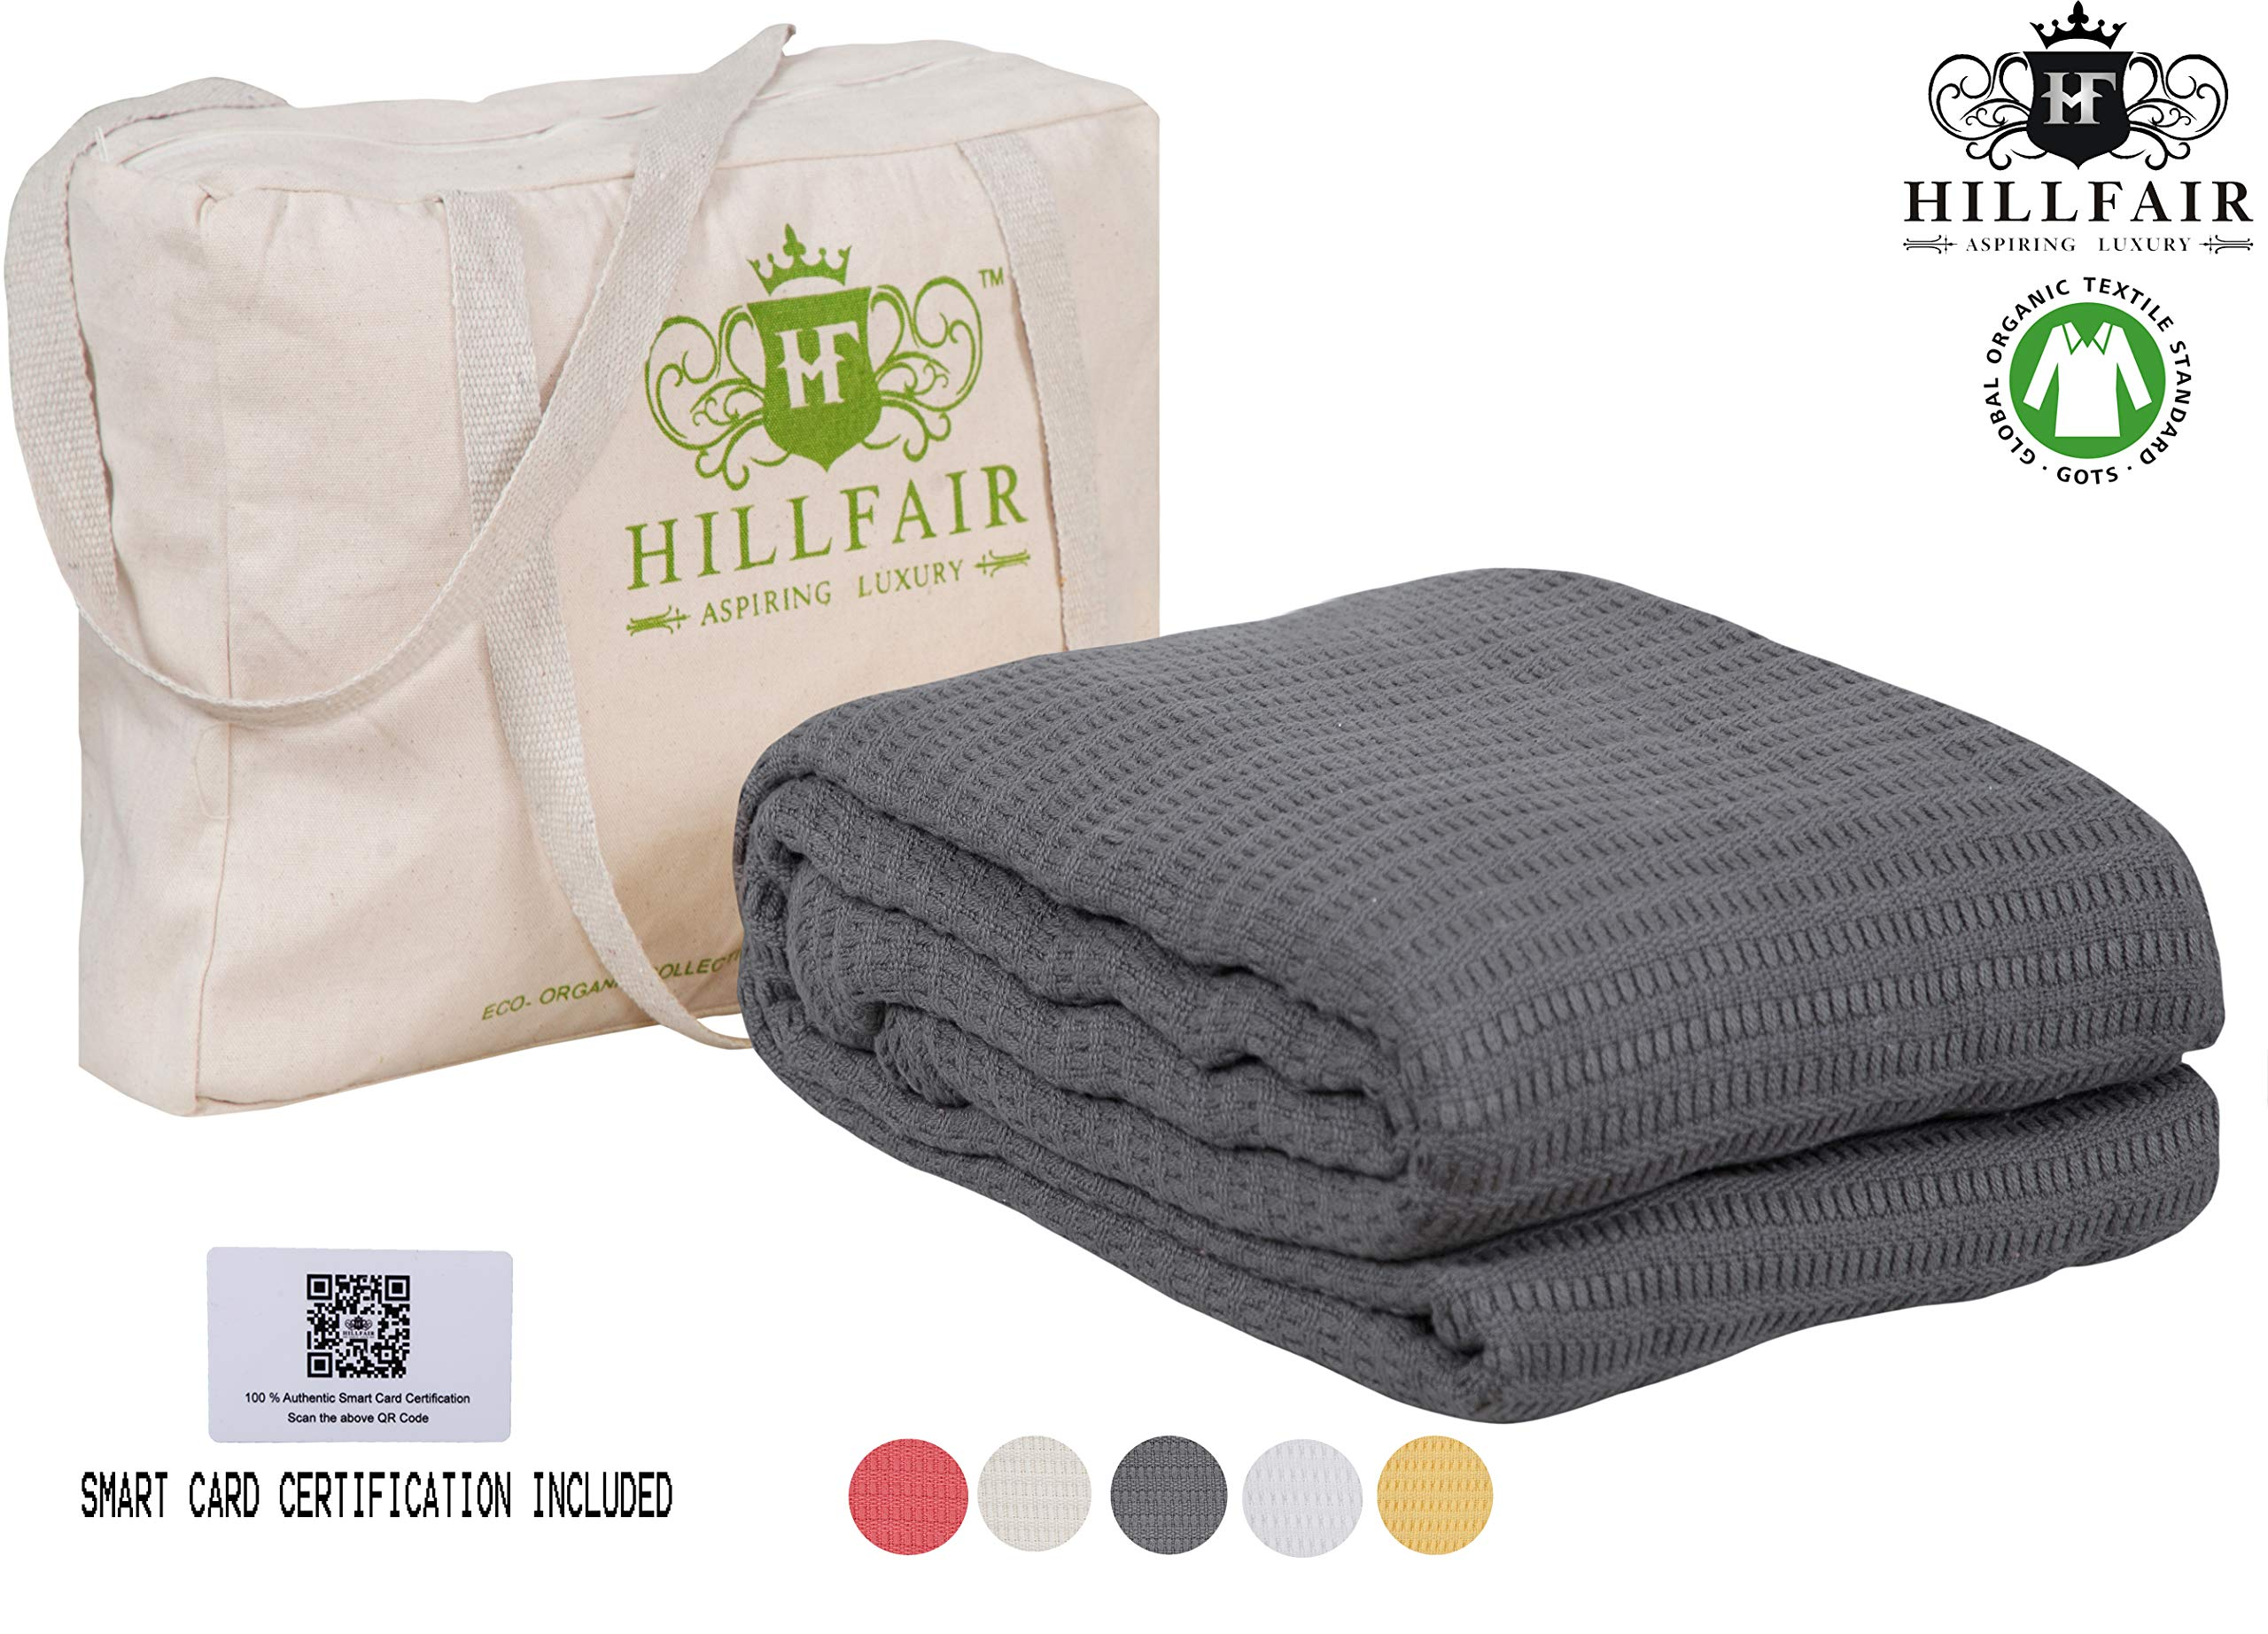 HILLFAIR 100% Certified Organic Cotton Blankets- King Size Bed Blankets- All Season Cotton Blanket- Grey King Size Cotton Blanket- Soft Cozy Multipurpose King Blankets- Organic Cotton Bed Blankets